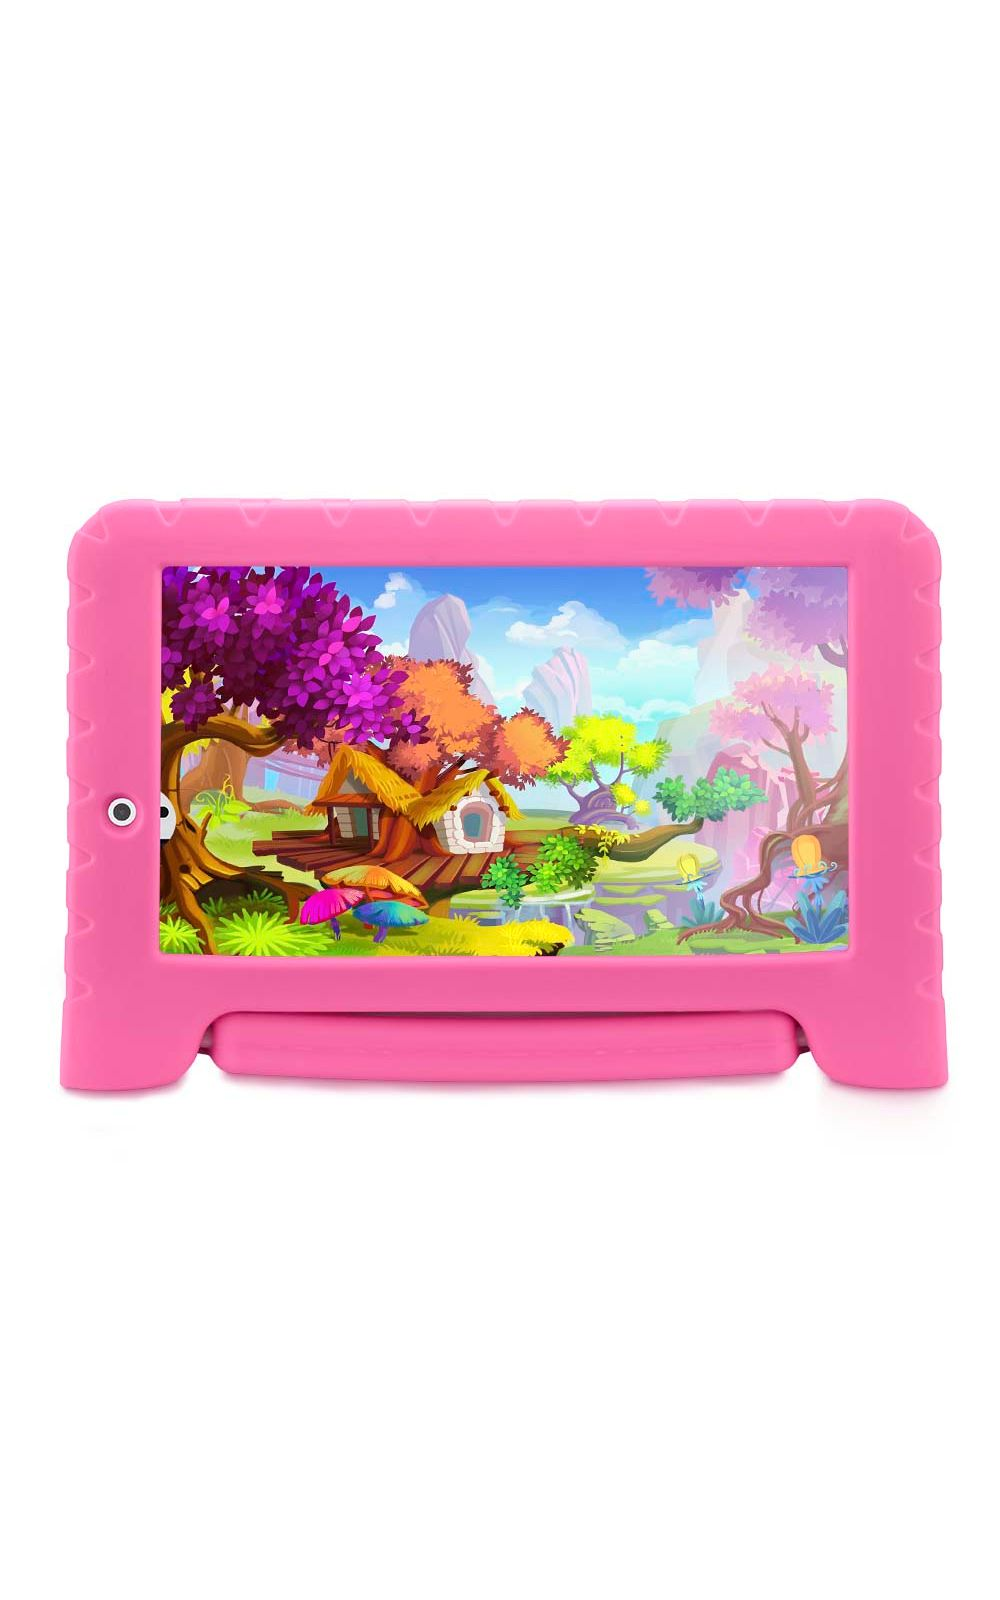 Foto 1 - Tablet Multilaser Kid Pad Plus Rosa 1Gb Android 7 Wifi Memória 8Gb Quad Core Multilaser - NB279